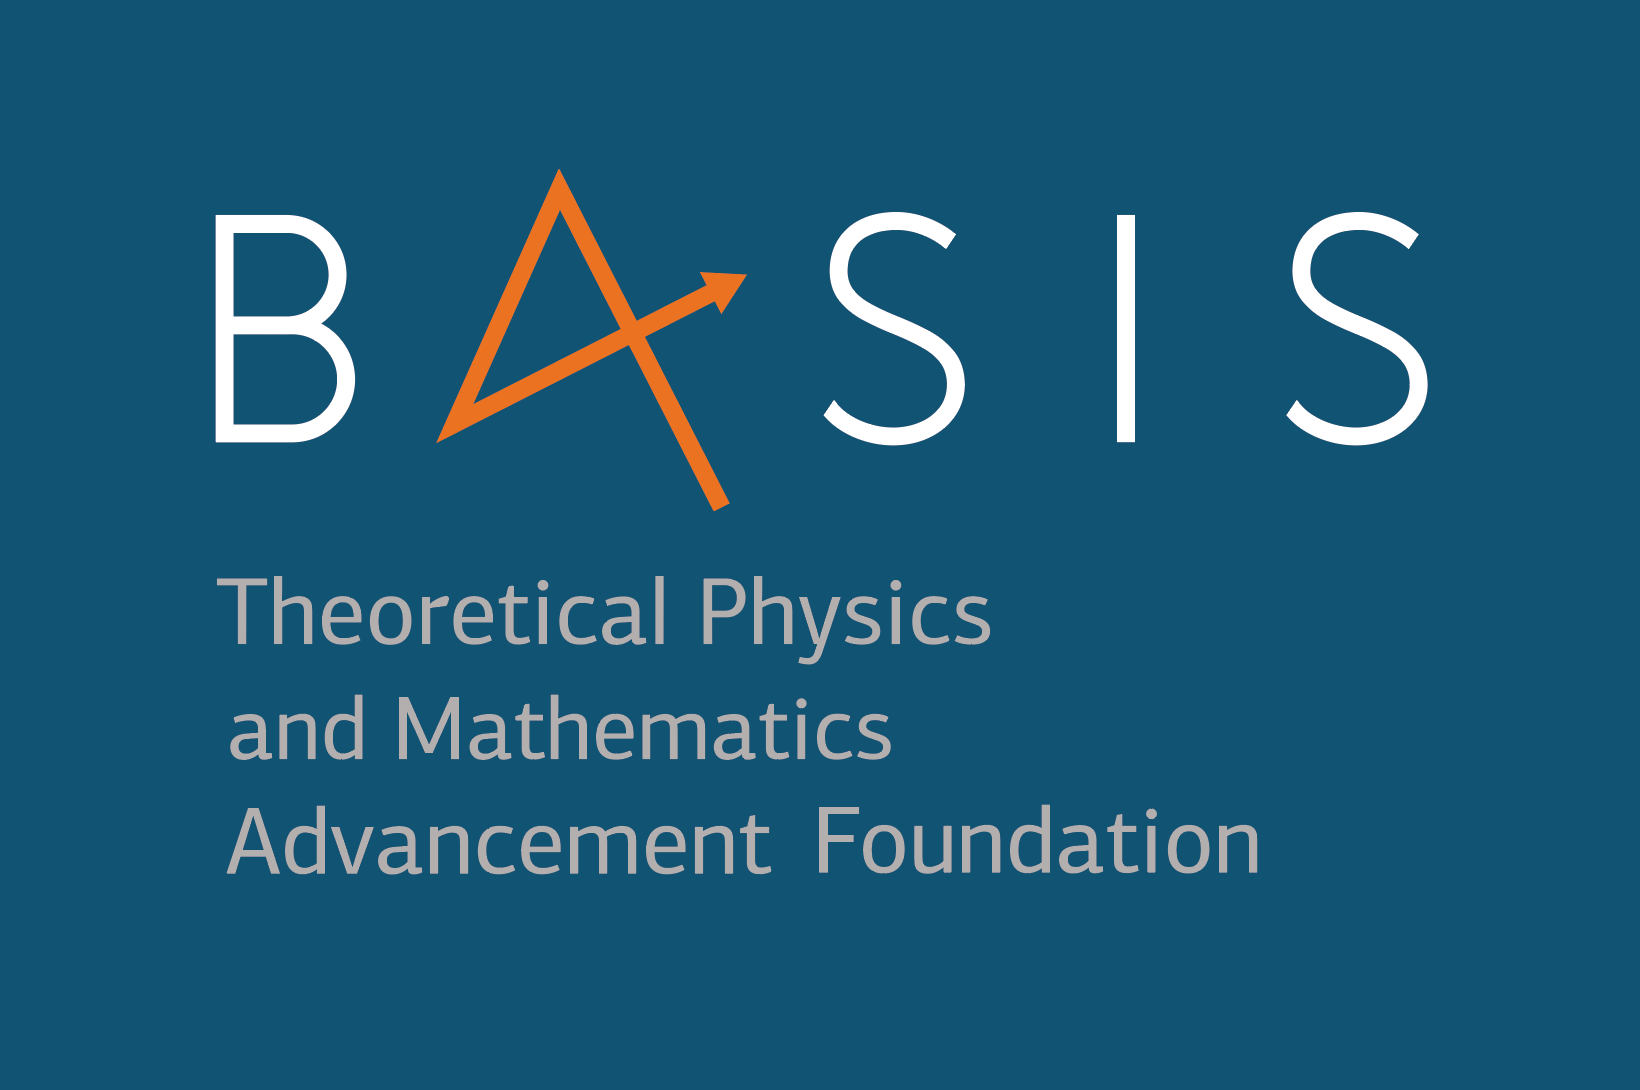 Theoretical Physics and Mathematics Advancement Foundation «BASIS»